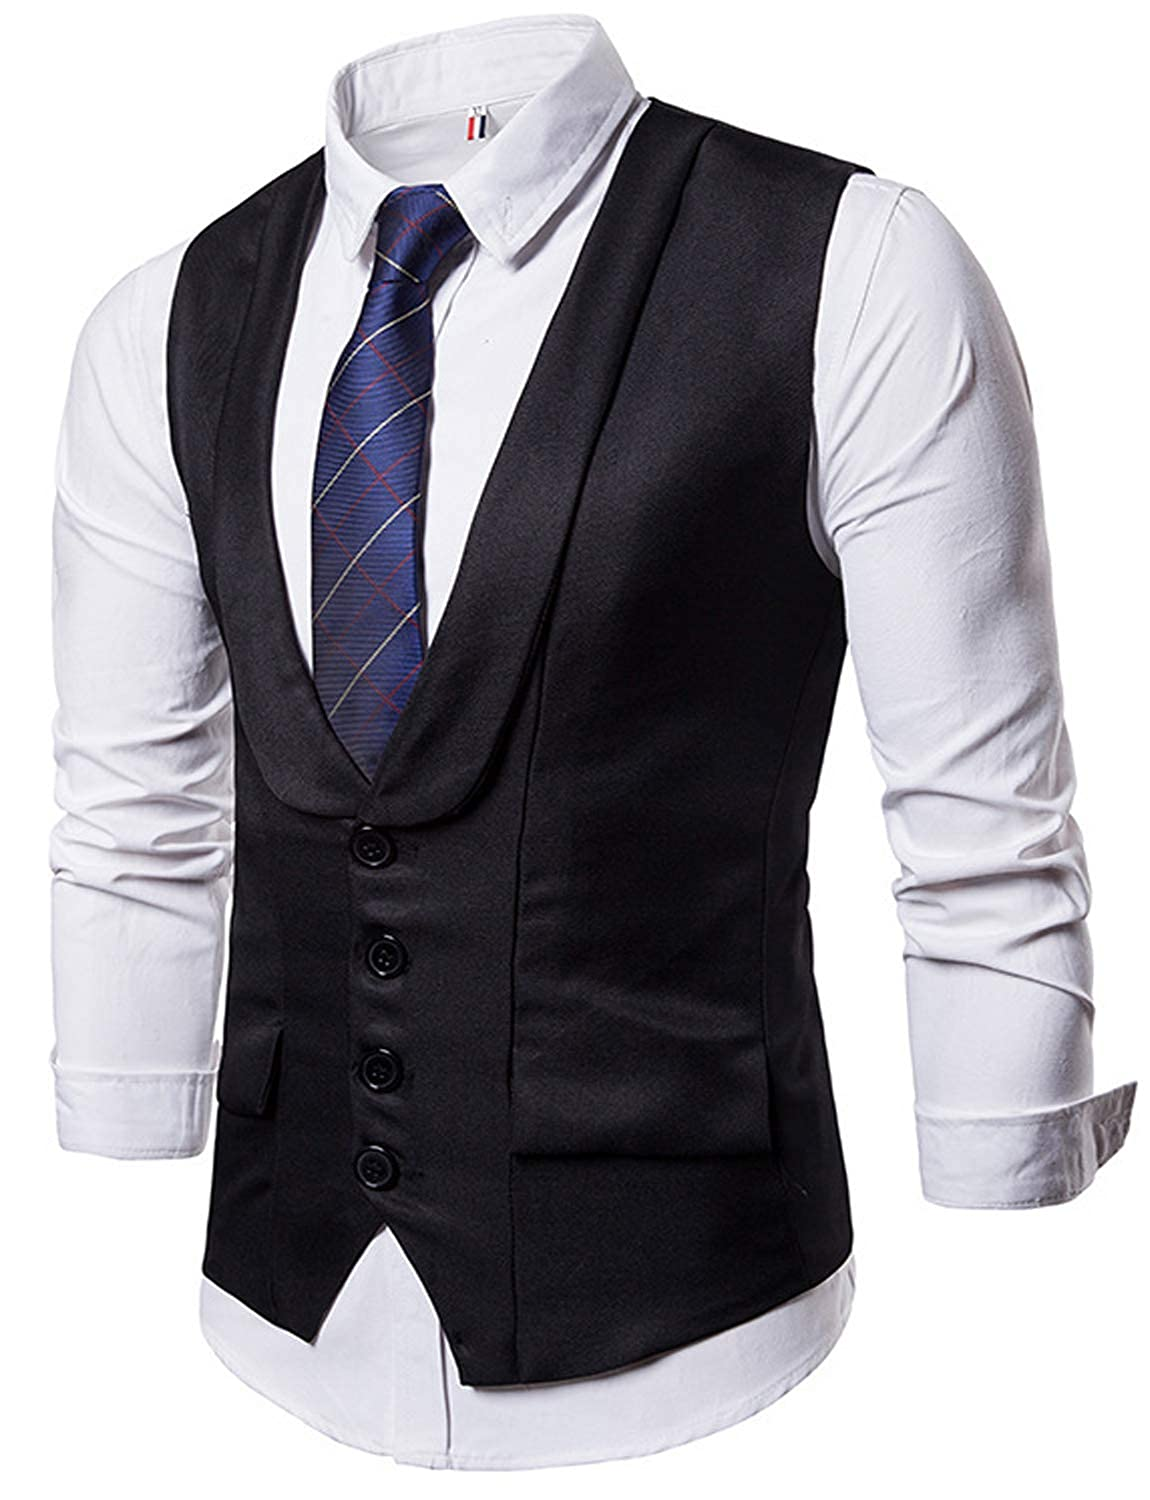 Christmas Party Suit Men.Dgmjdfkdrfu Men Formal Suit Waistcoat Wedding Vest For